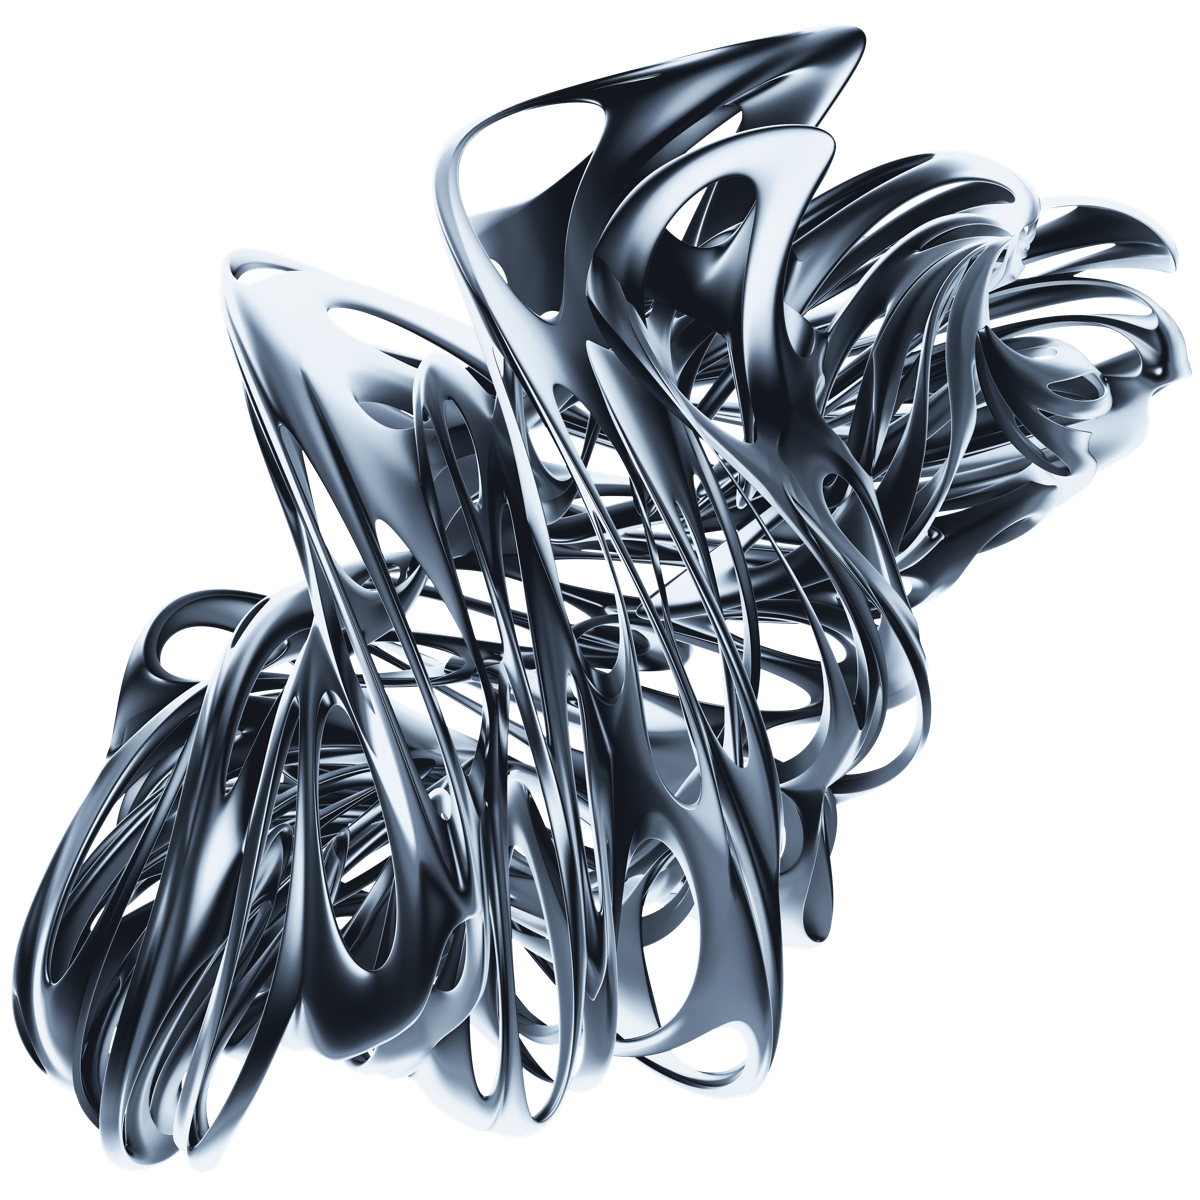 Skew 105 Warped 3D Shapes in 2019 Abstract Stock Art by Chroma 1200x1200